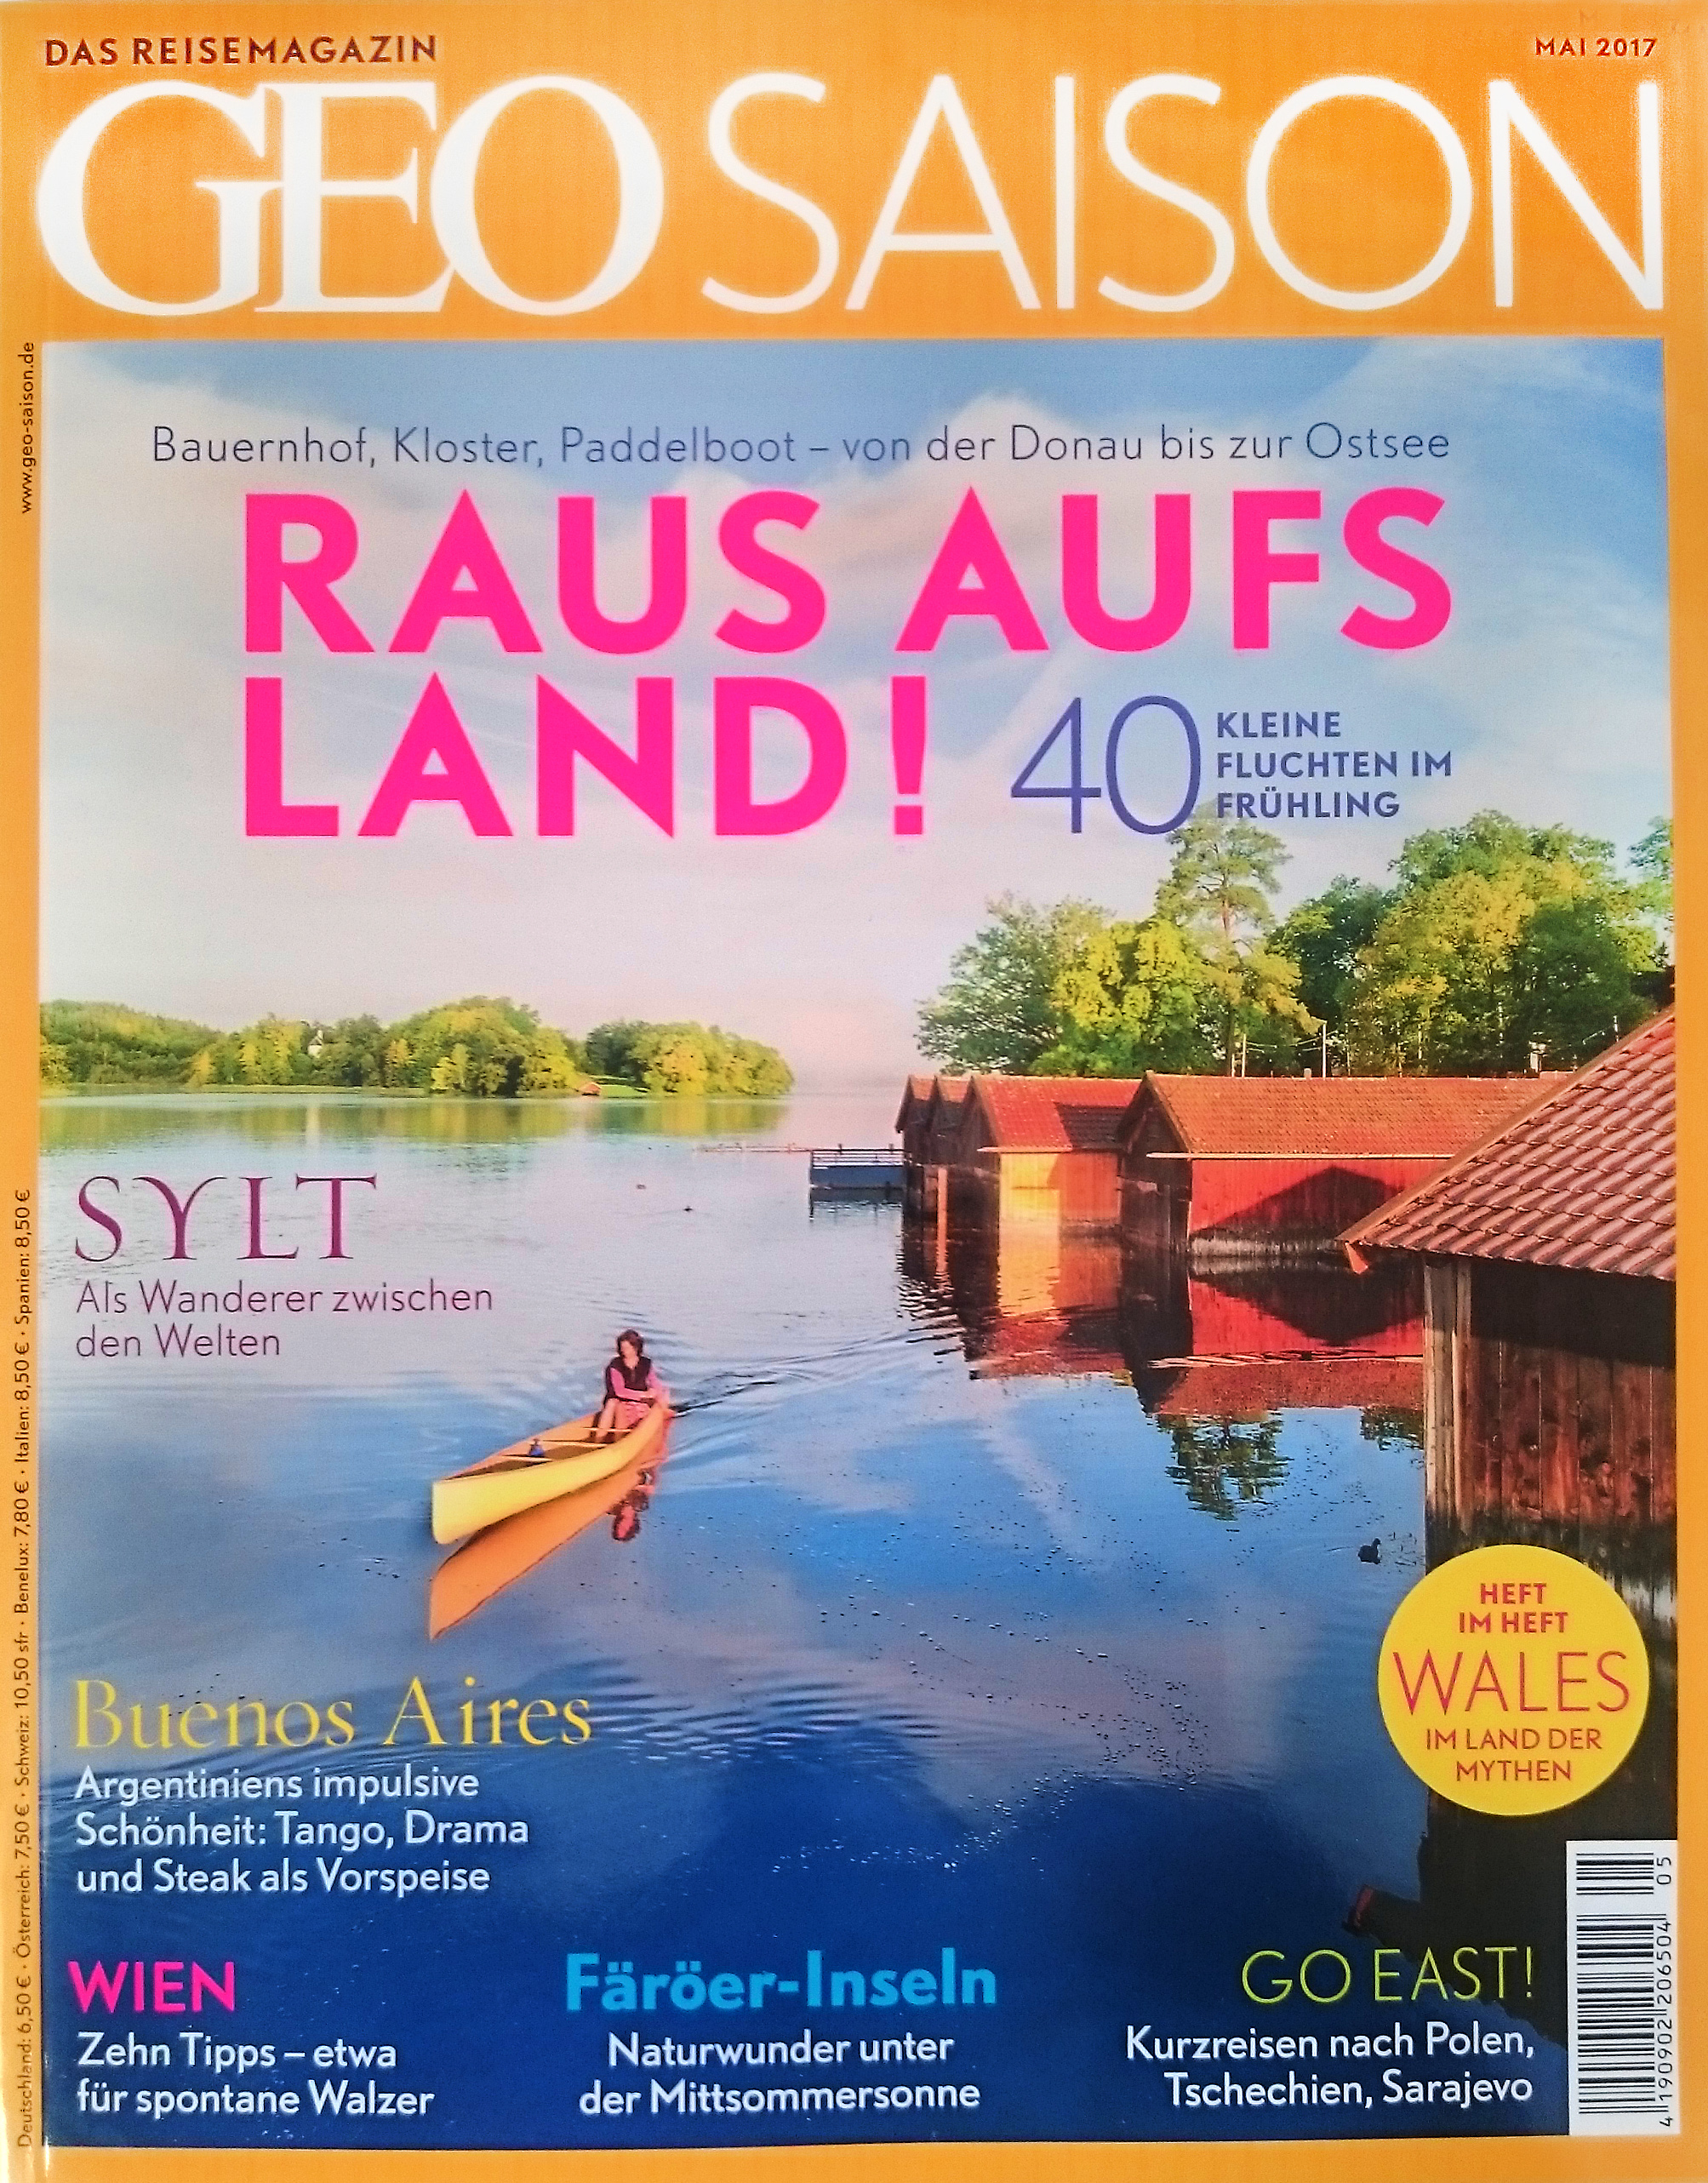 Cover for German Travel Magazine Geo Saison